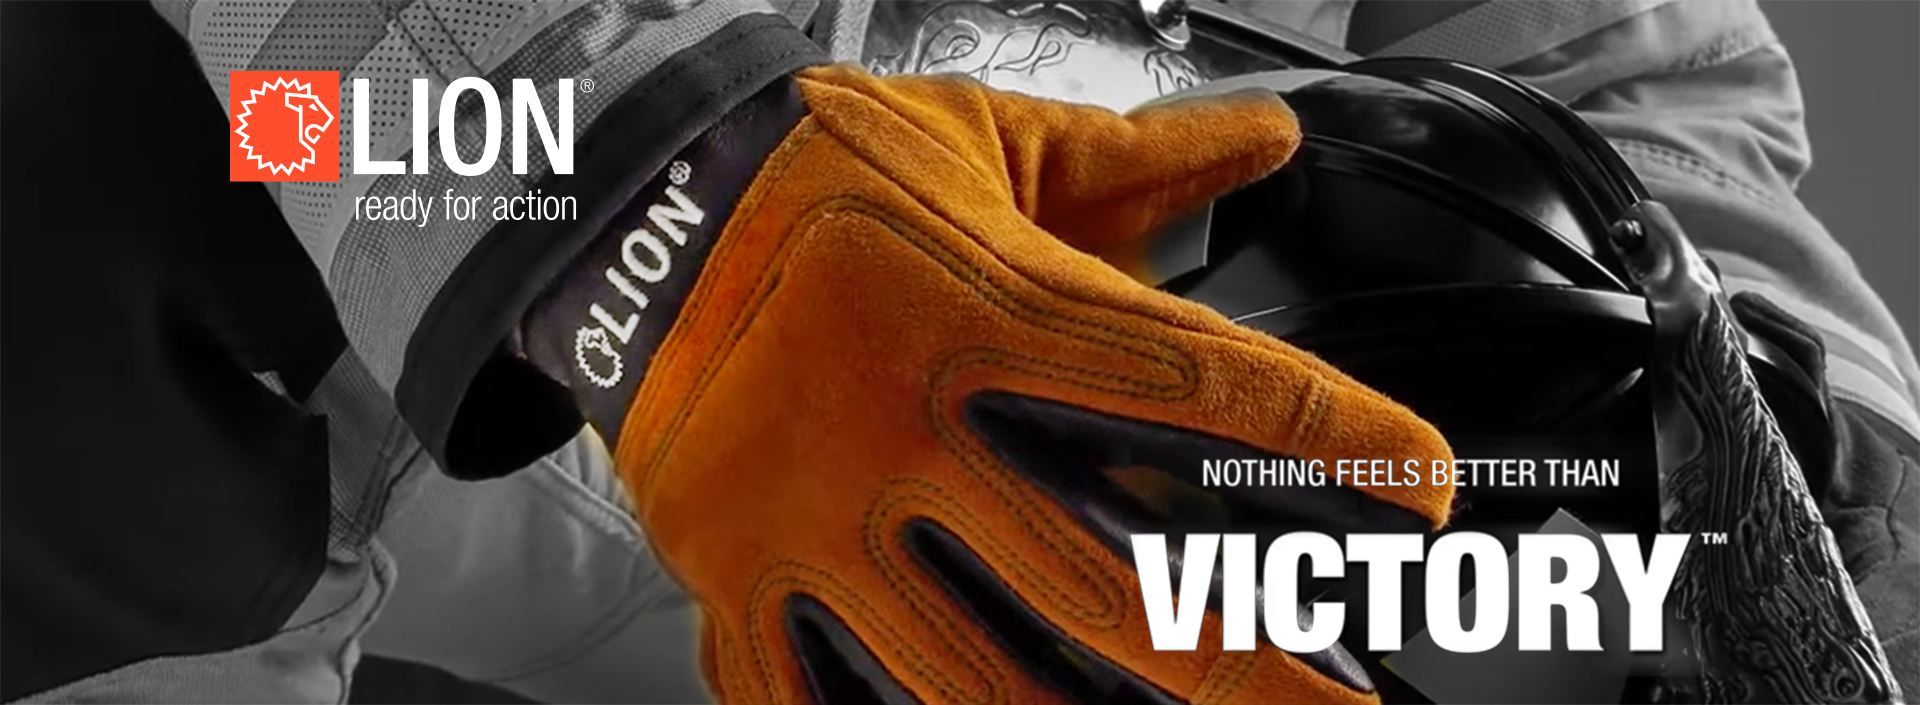 victory gloves